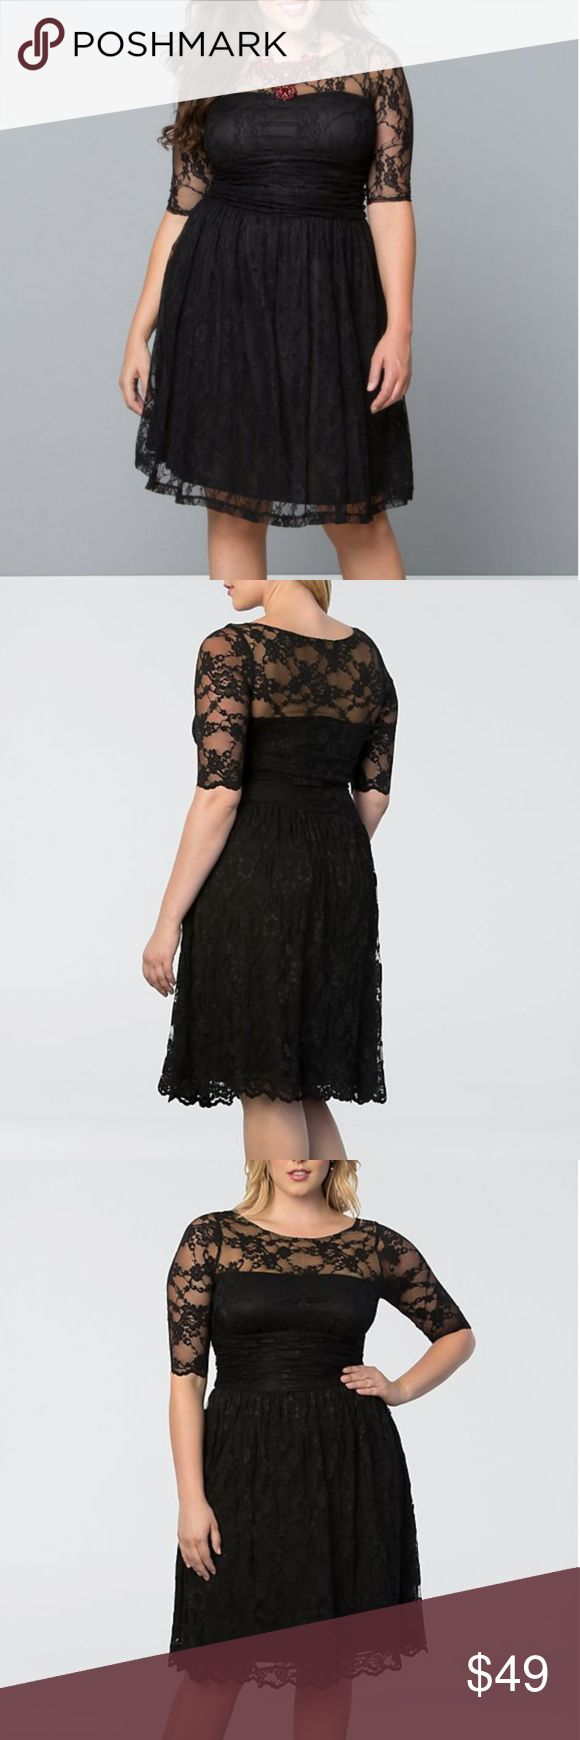 """Kiyonna Luna Lace Dress - Size 2 - 18/20 - New! Kiyonna Luna Lace Dress - Size 2 - 18/20 Black with beige liner   """"Our Luna Lace Dress ups the ante in women's plus size style! With scalloped lace and nude mesh backing to hide bra straps; you'll simply adore this stylish cocktail dress. A slightly full A-line skirt will give you a fabulous hourglass-like shape and is great for any special occasion.""""   This is a gorgeous and flattering dress, but I haven't had any excuses to dress this nice in…"""